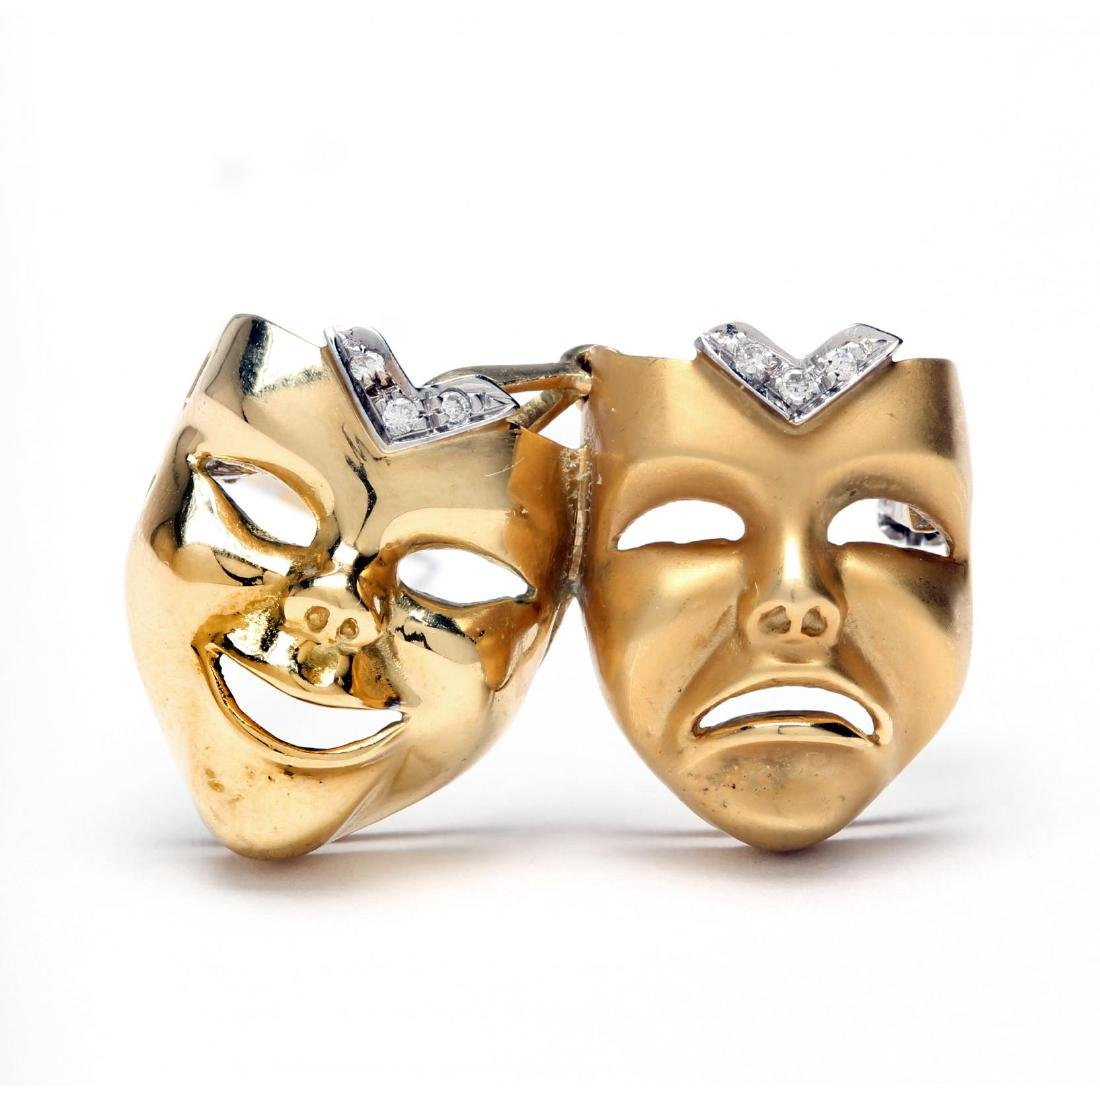 18KT Gold and Diamond Mask Brooch / Pendant, Italy